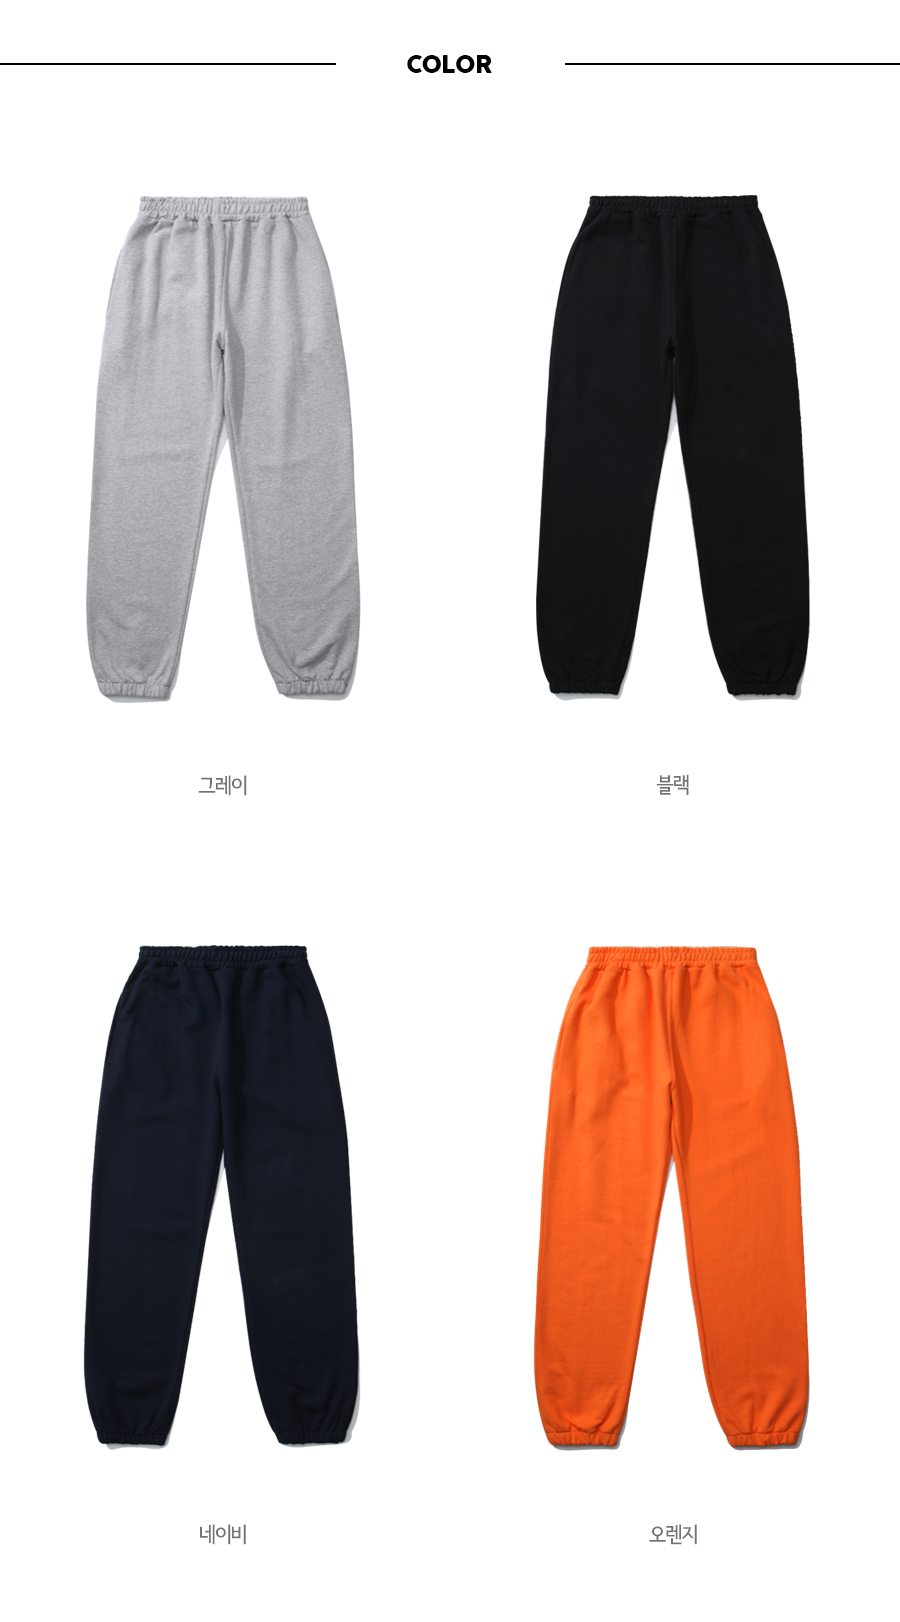 20190129_wide_easy_pants_color_yh.jpg